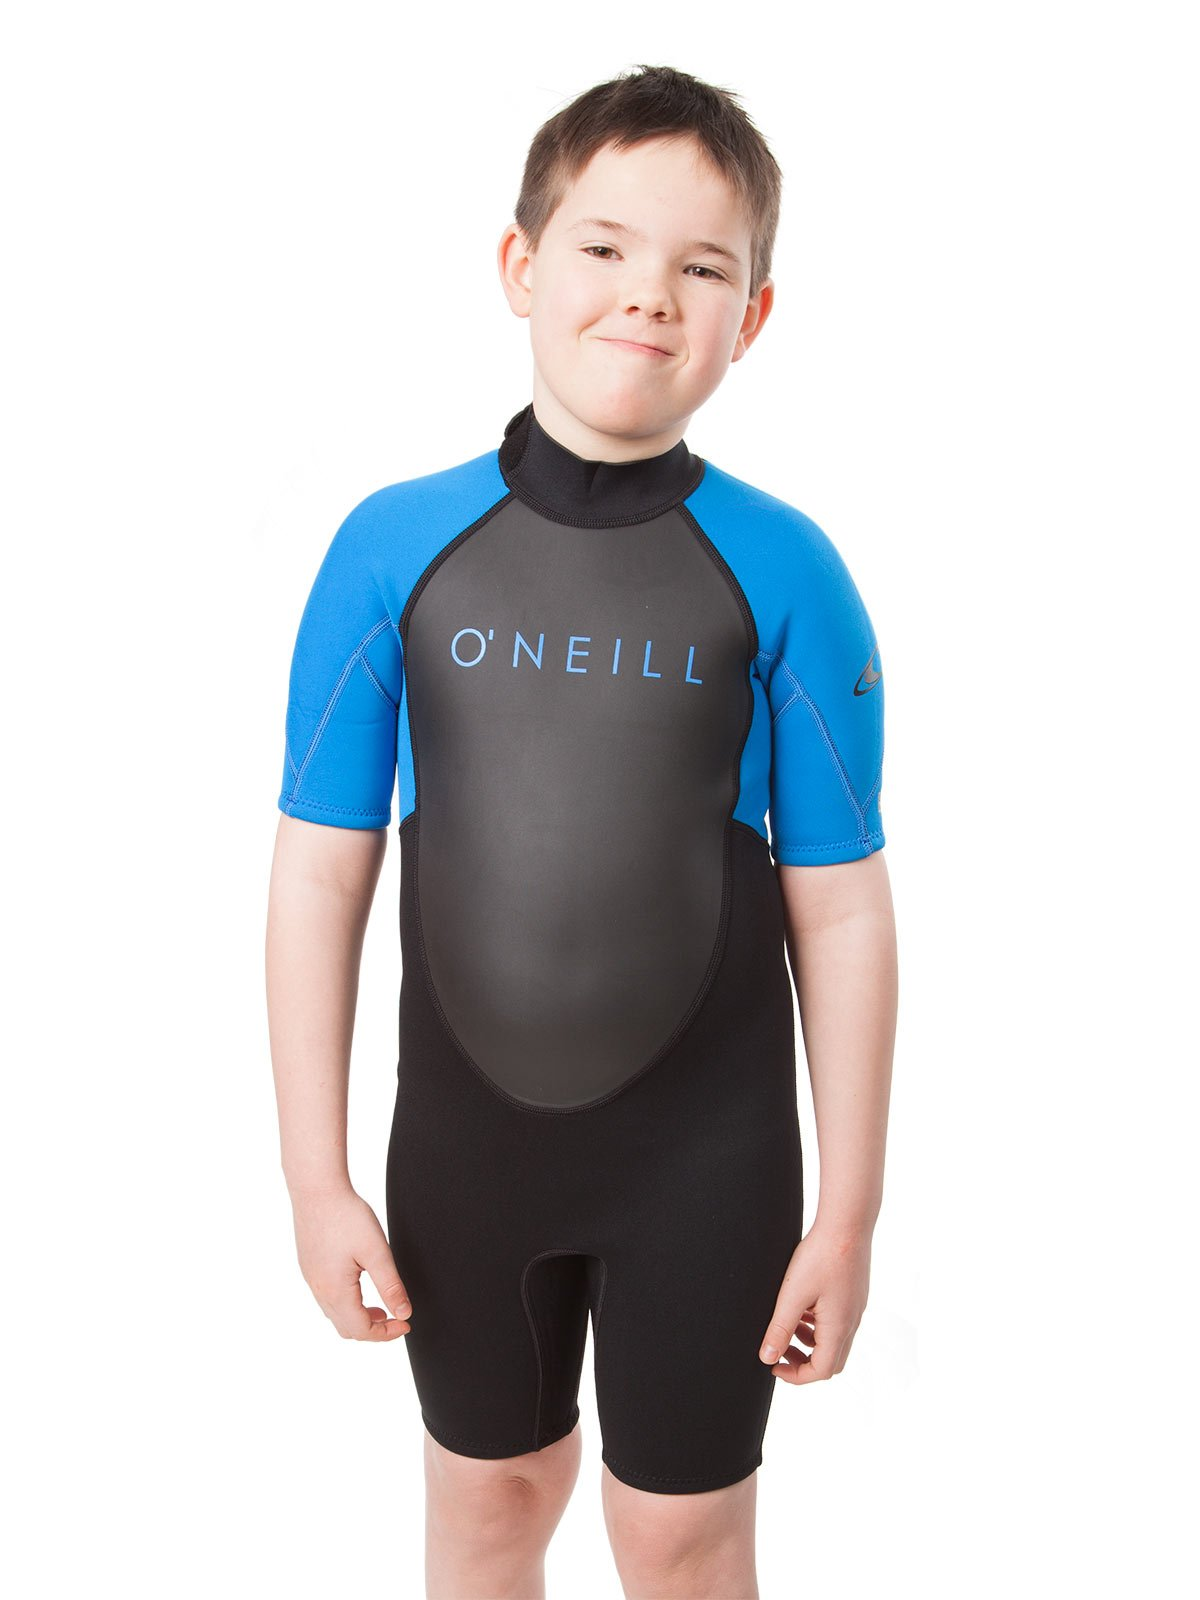 O'Neill Youth Reactor-2 2mm Back Zip Short Sleeve Spring Wetsuit, Black/Ocean, 4 by O'Neill Wetsuits (Image #4)